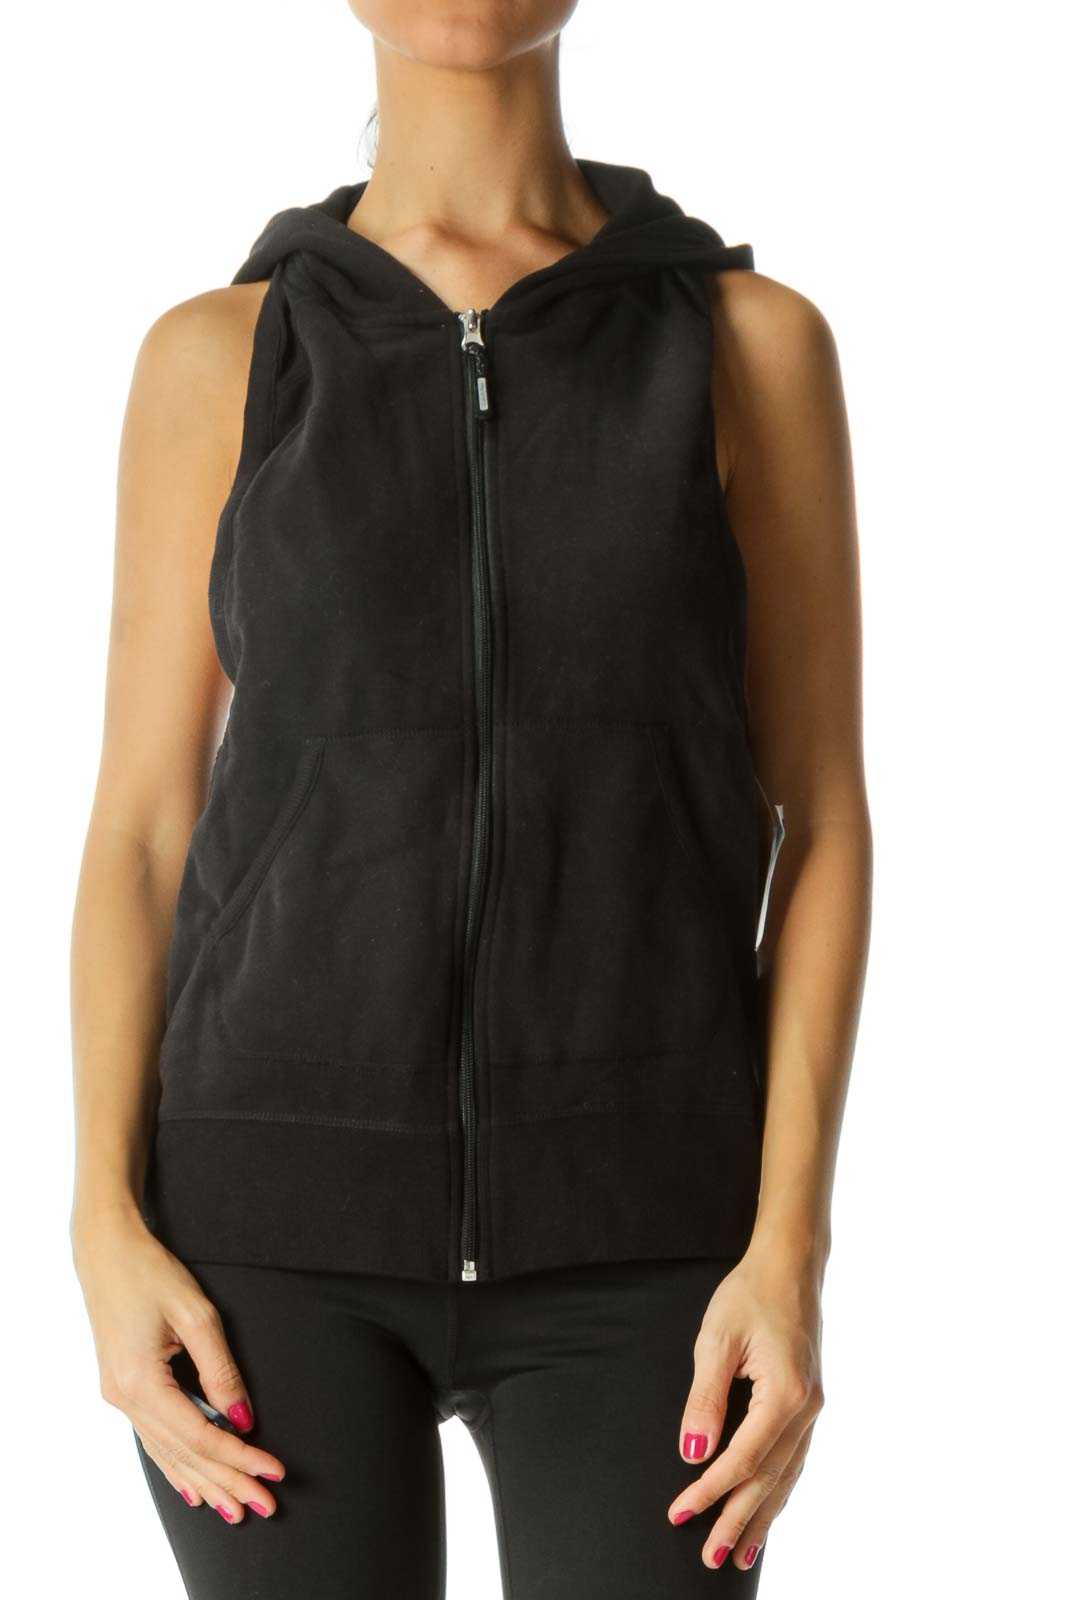 Black Mesh Material Hooded Quick-Dry Sweat Vest